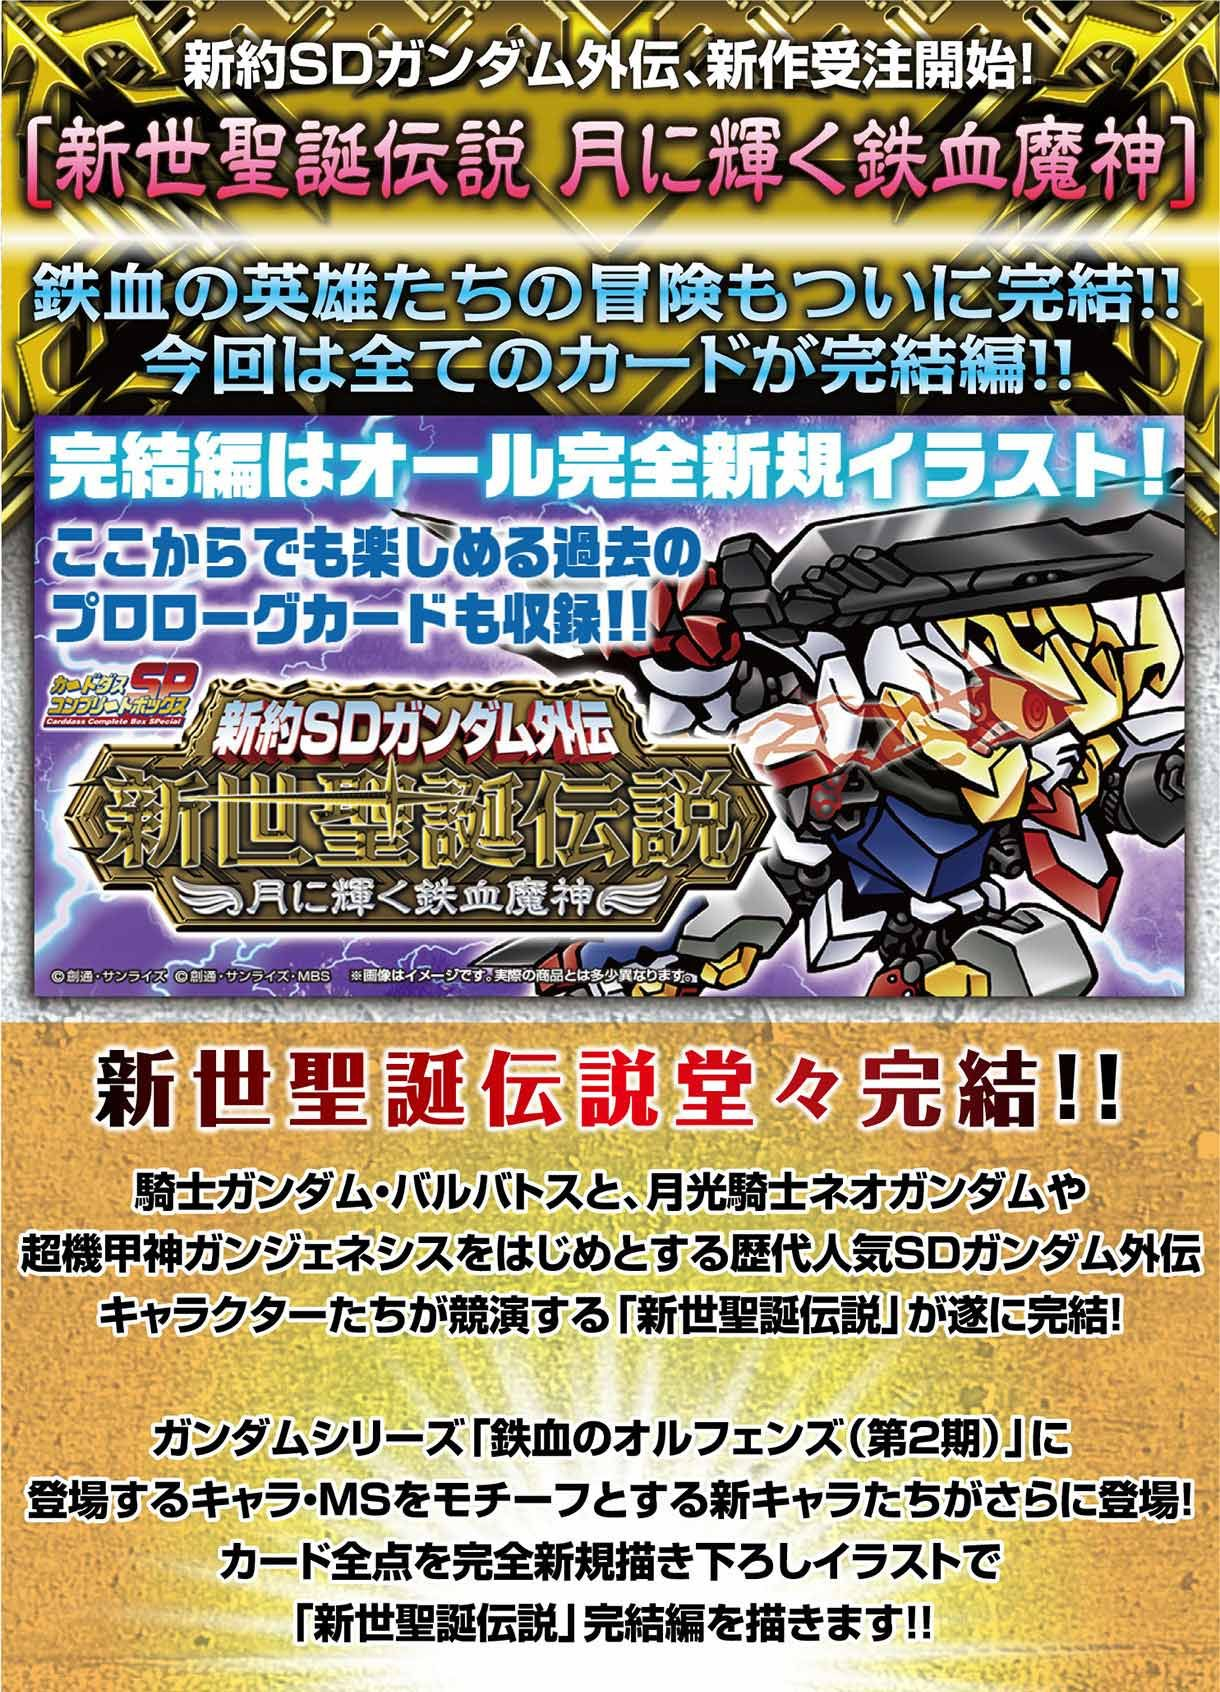 NEW TESTAMENT SD GUNDAM GAIDEN: NEW WORLD ADVENT LEGEND